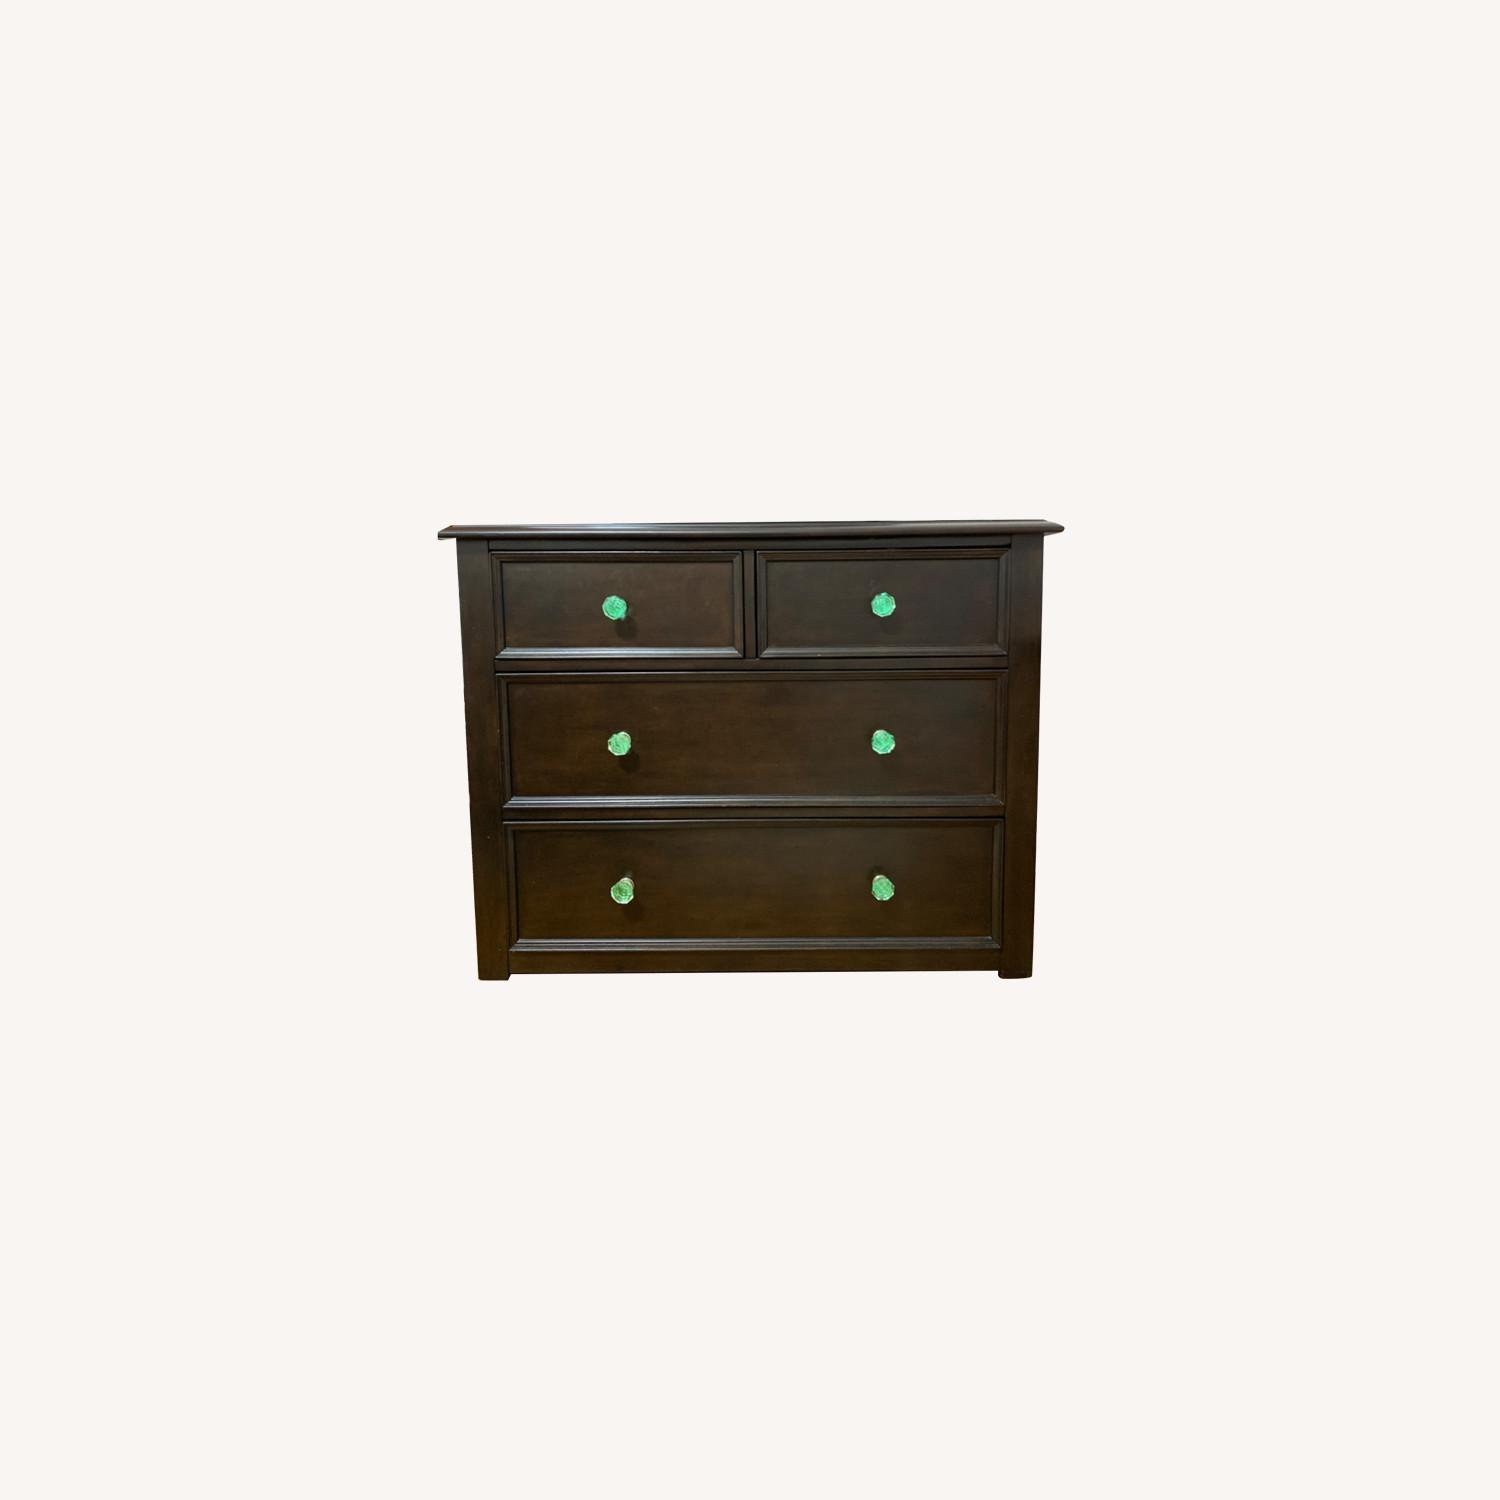 Pottery Barn Dresser with Anthropologie knobs - image-0